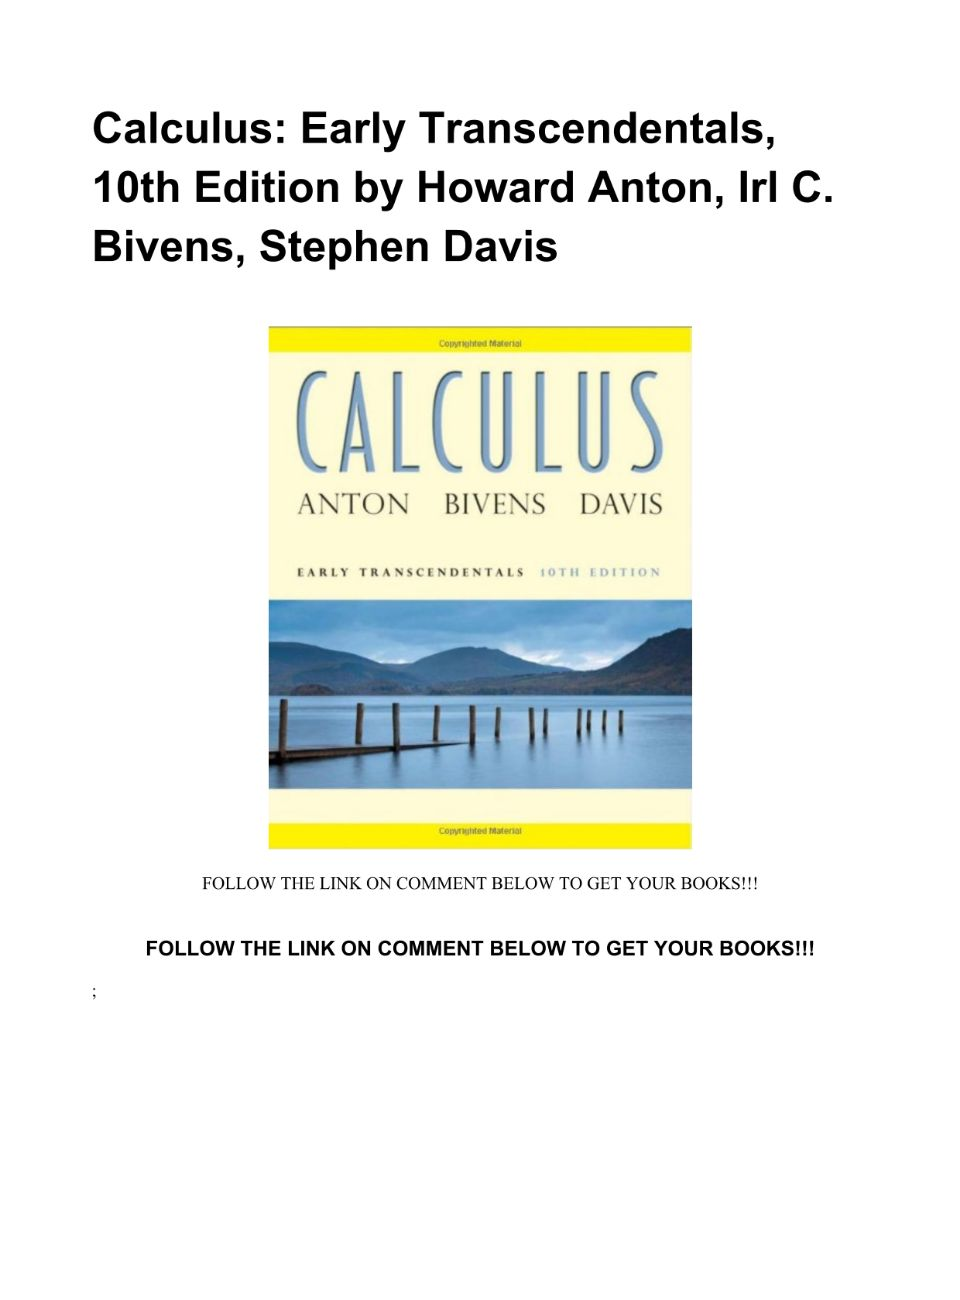 Calculus Early Transcendentals 10th Edition Pdf Download